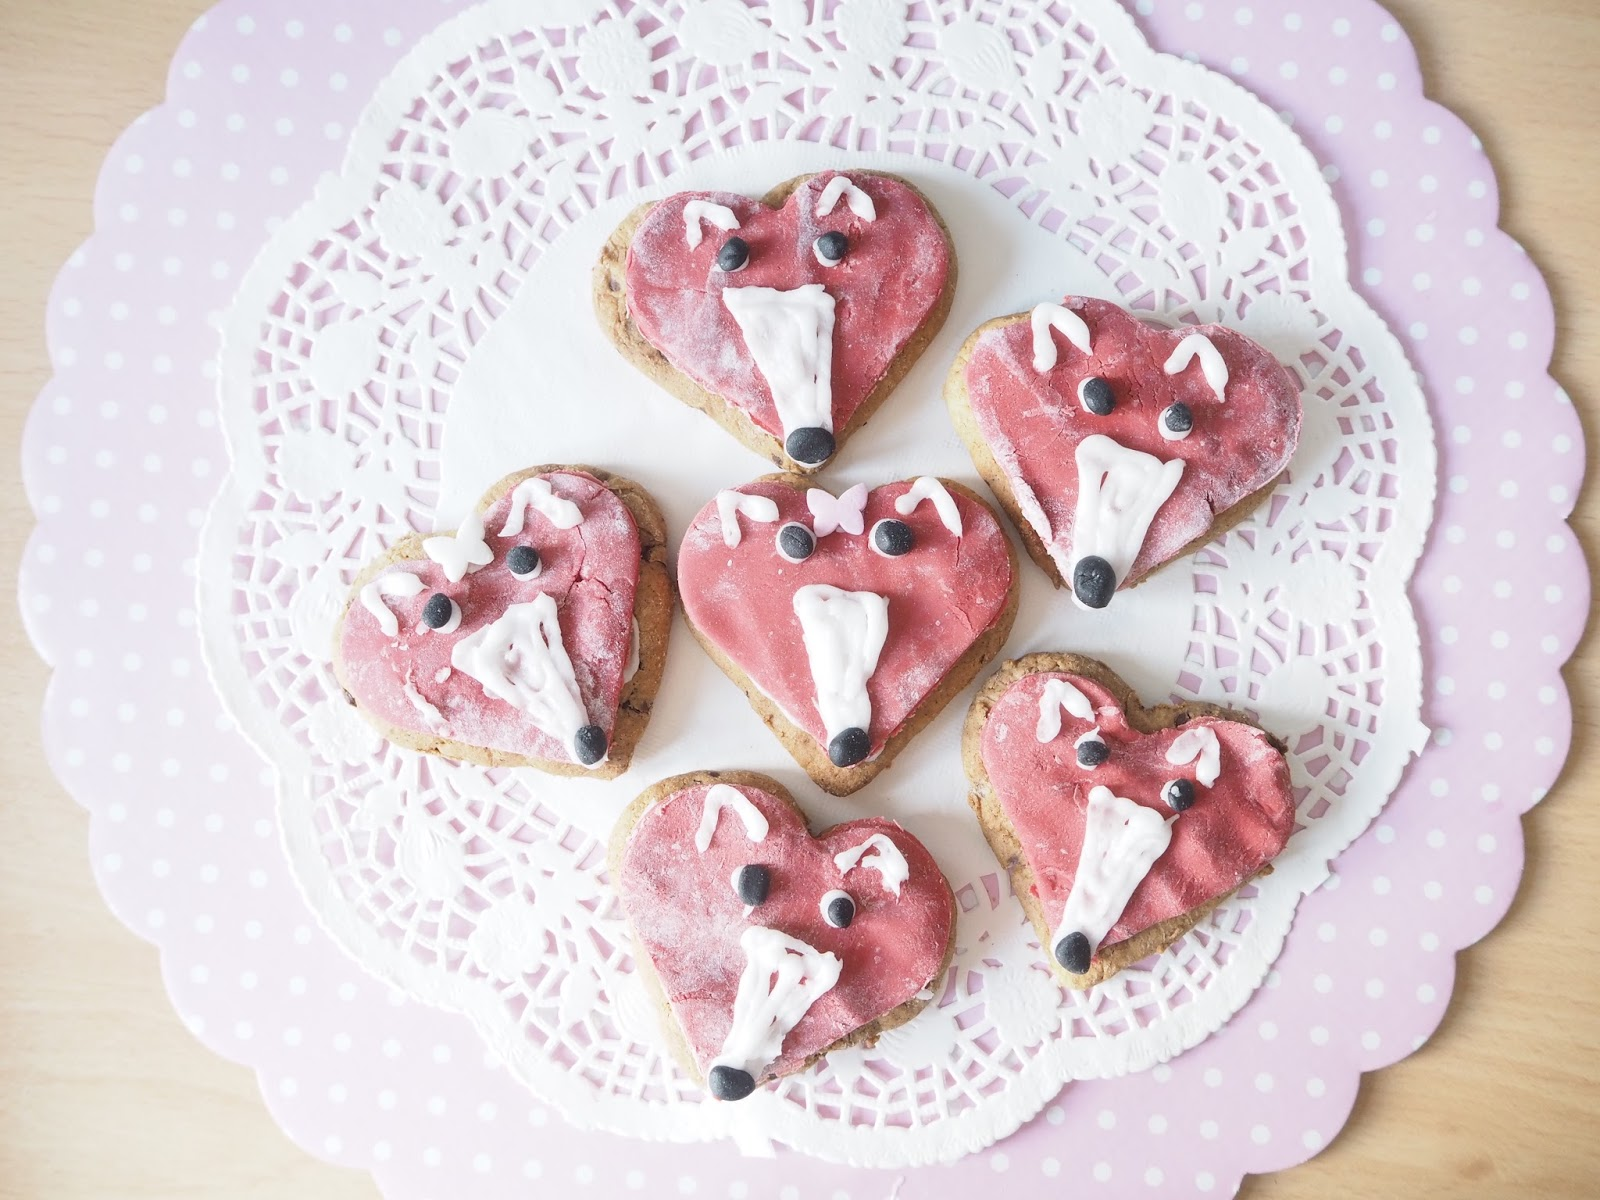 foxcookies, foxcakes, baking